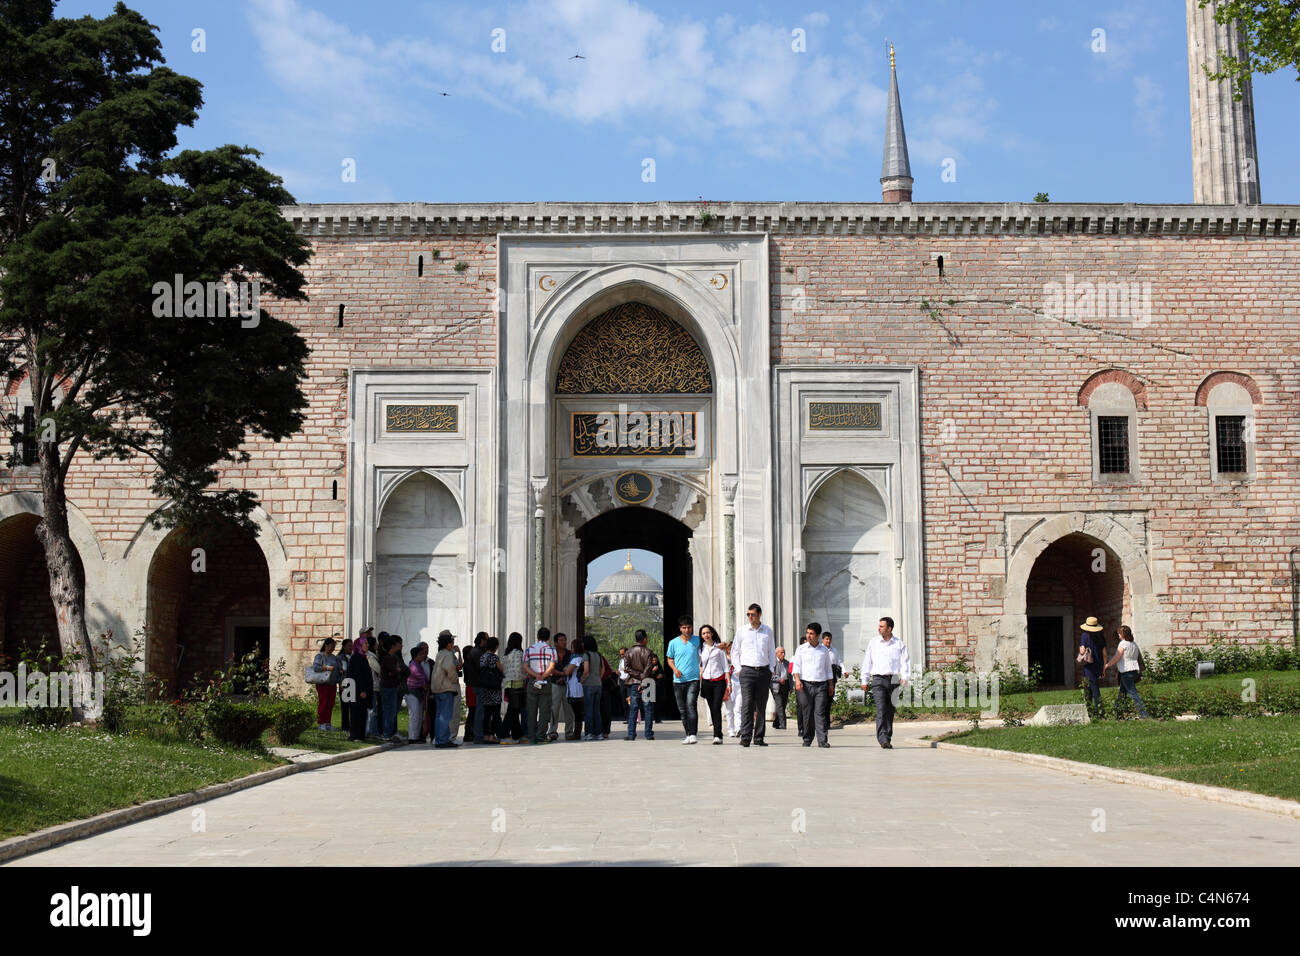 Entrance gate to the Topkapi Palace in Istanbul, Turkey. Photo taken at 25th of Mai 2011 - Stock Image